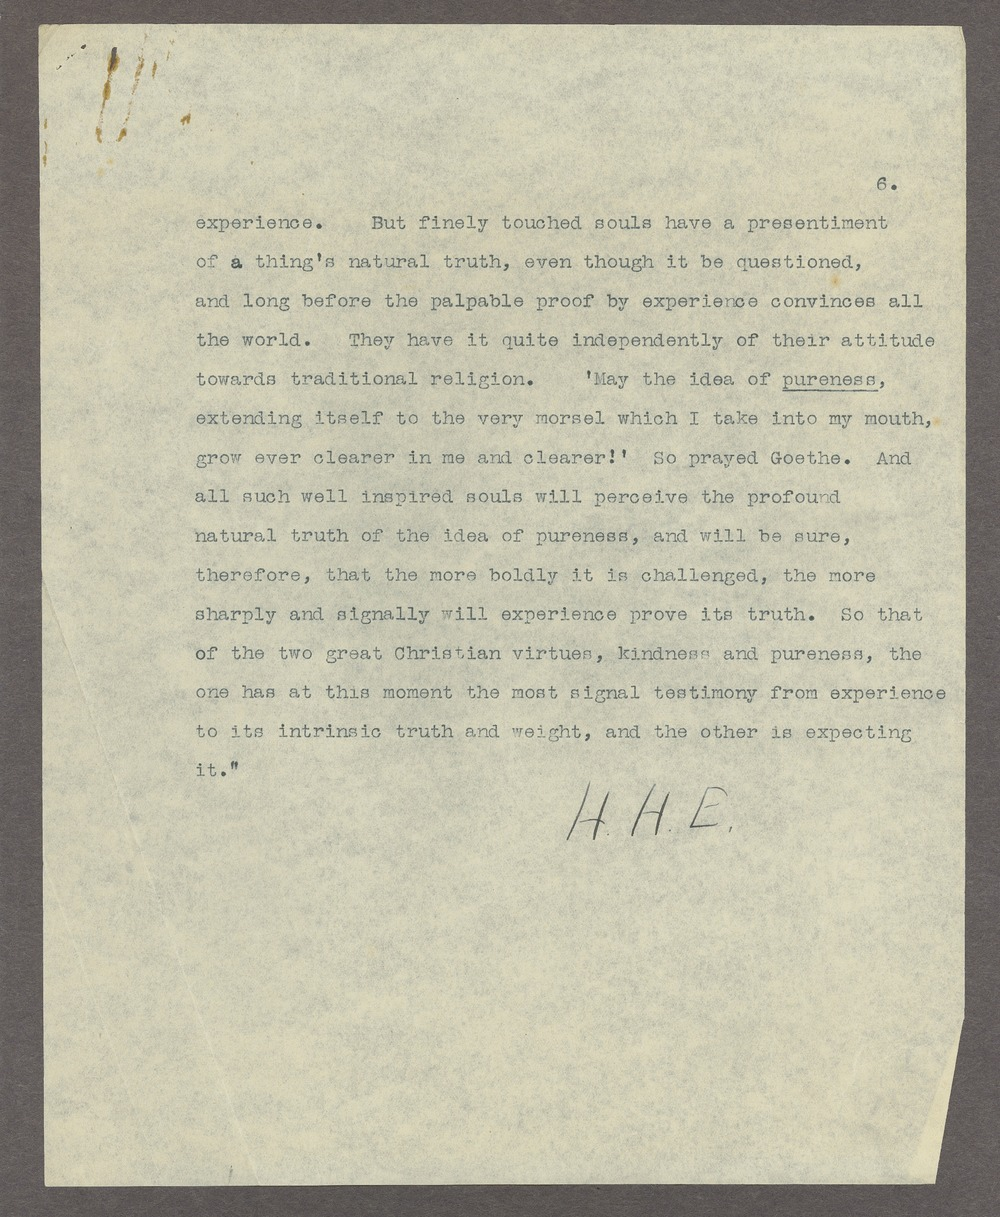 Henry Havelock Ellis papers - 6